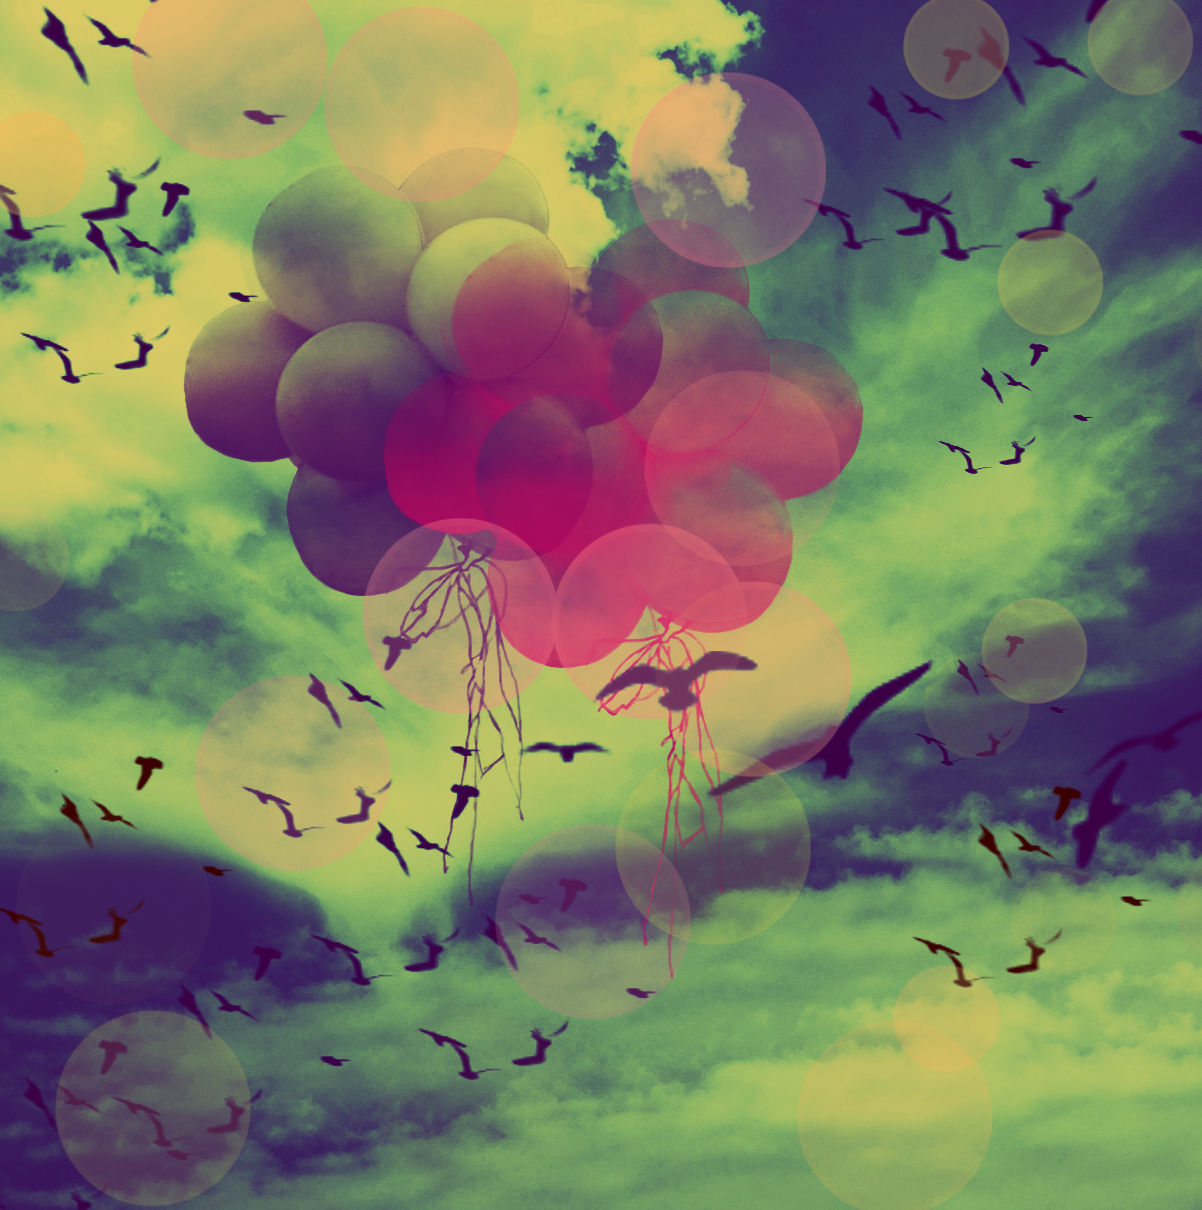 Balloons In The Skyjpg